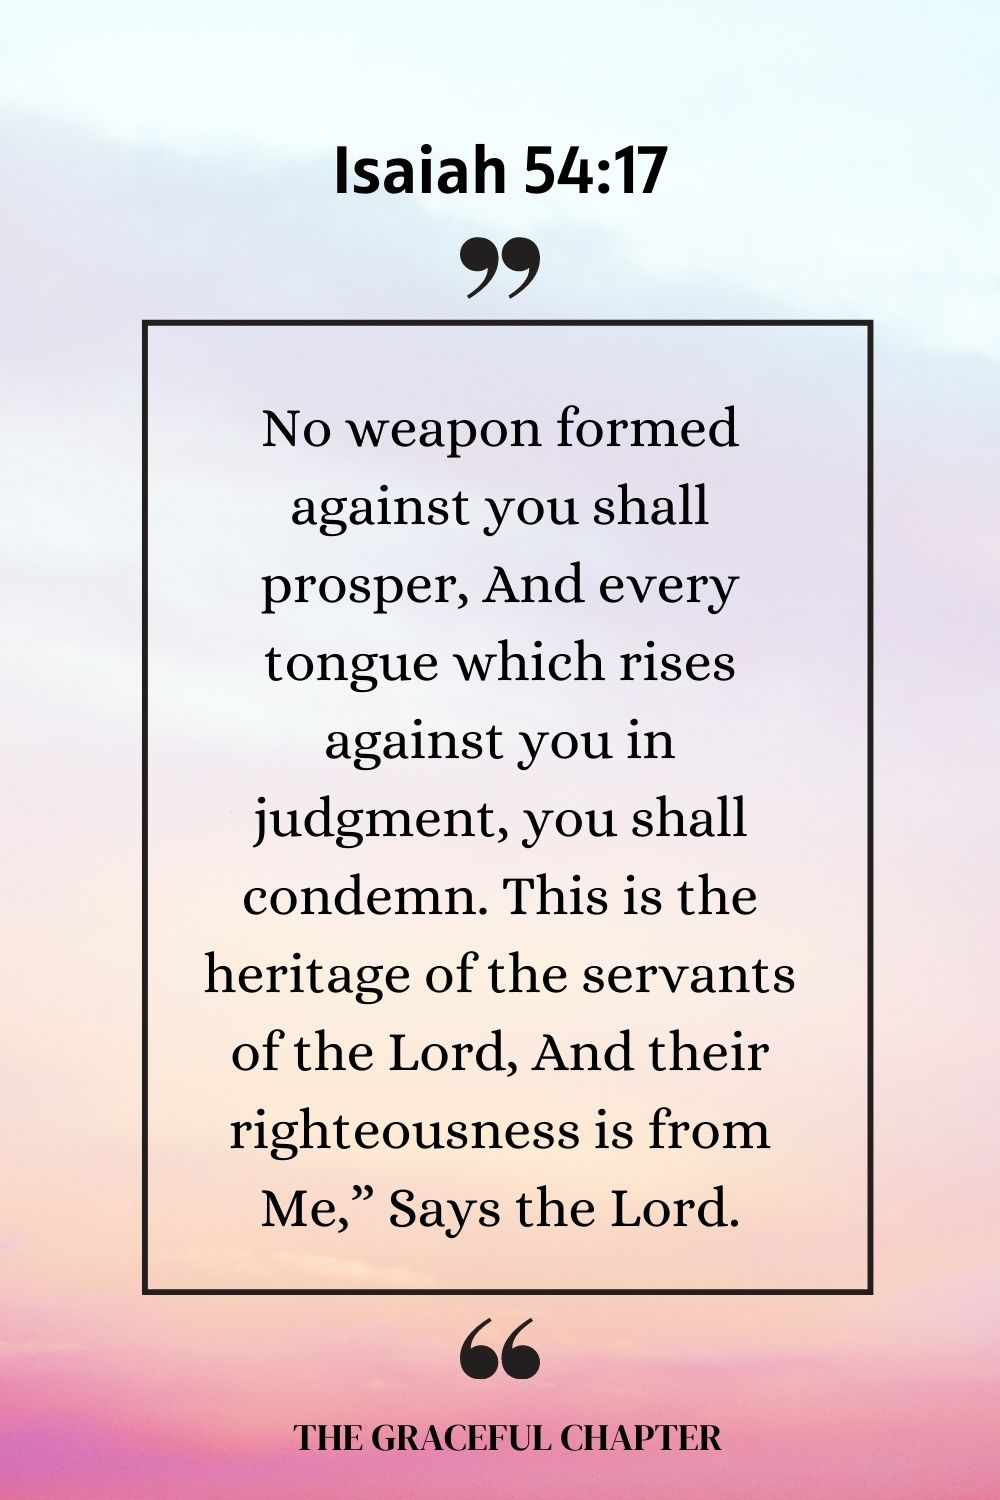 Isaiah 54:17 - No weapon formed against you shall prosper